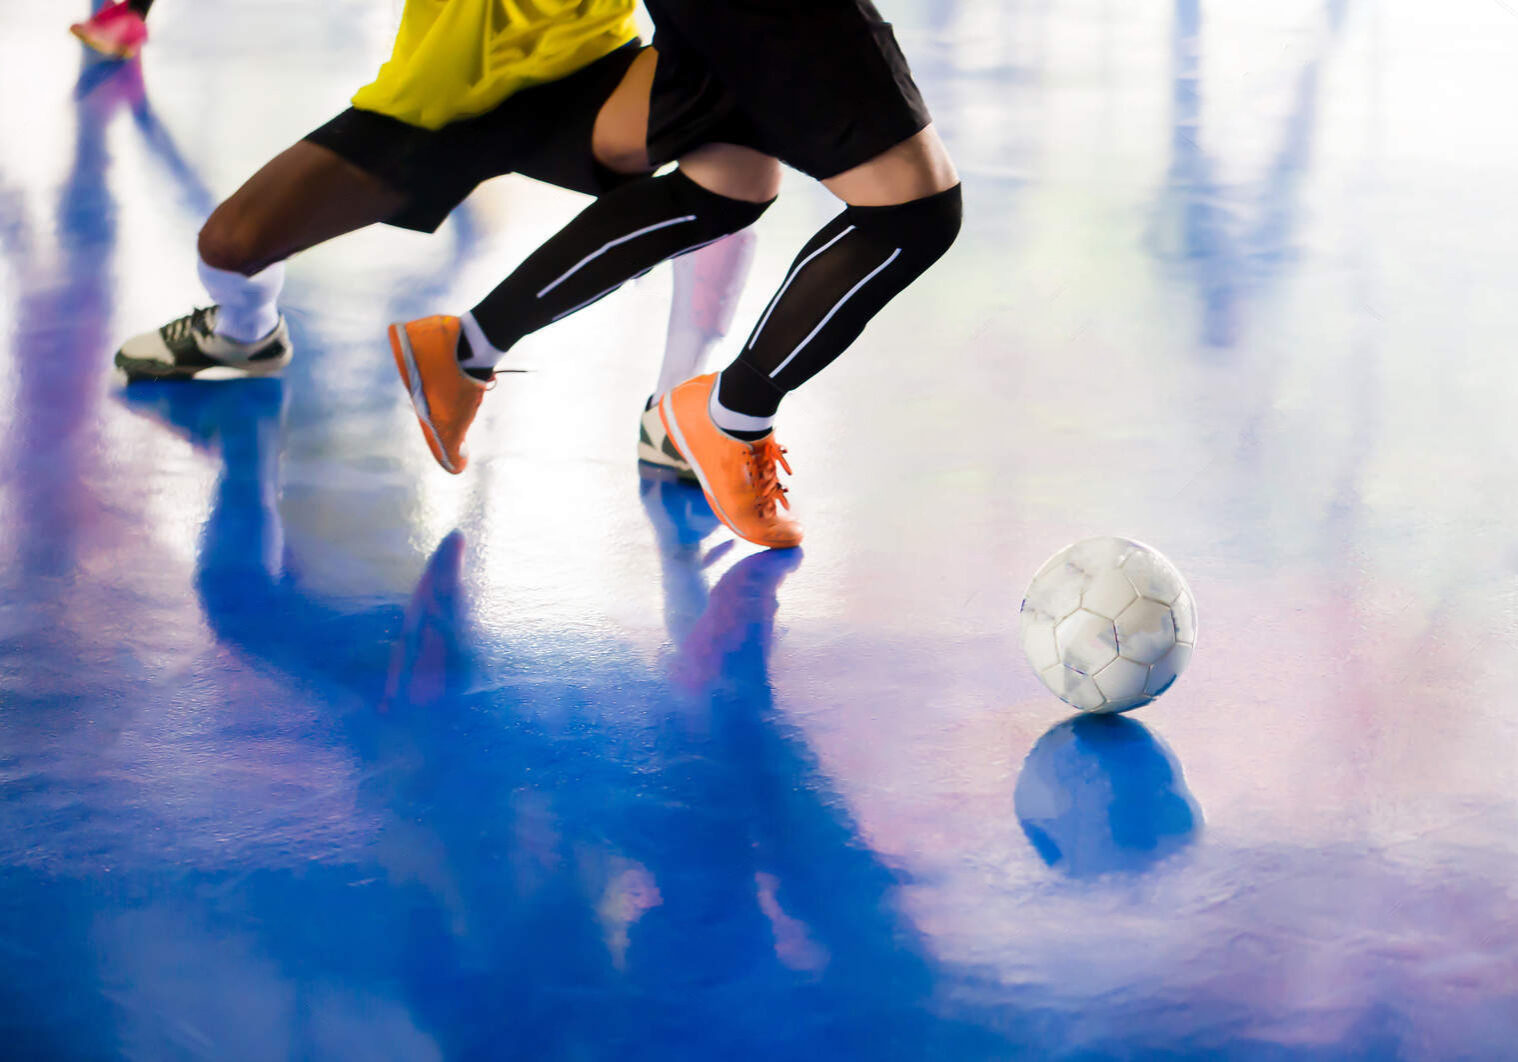 Futsal player  trap and control the ball for shoot to goal. Soccer players fighting each other by kicking the ball. Indoor soccer sports hall. Football futsal player, ball, futsal floor. Sports background. Youth futsal league. Indoor football players with classic soccer ball.